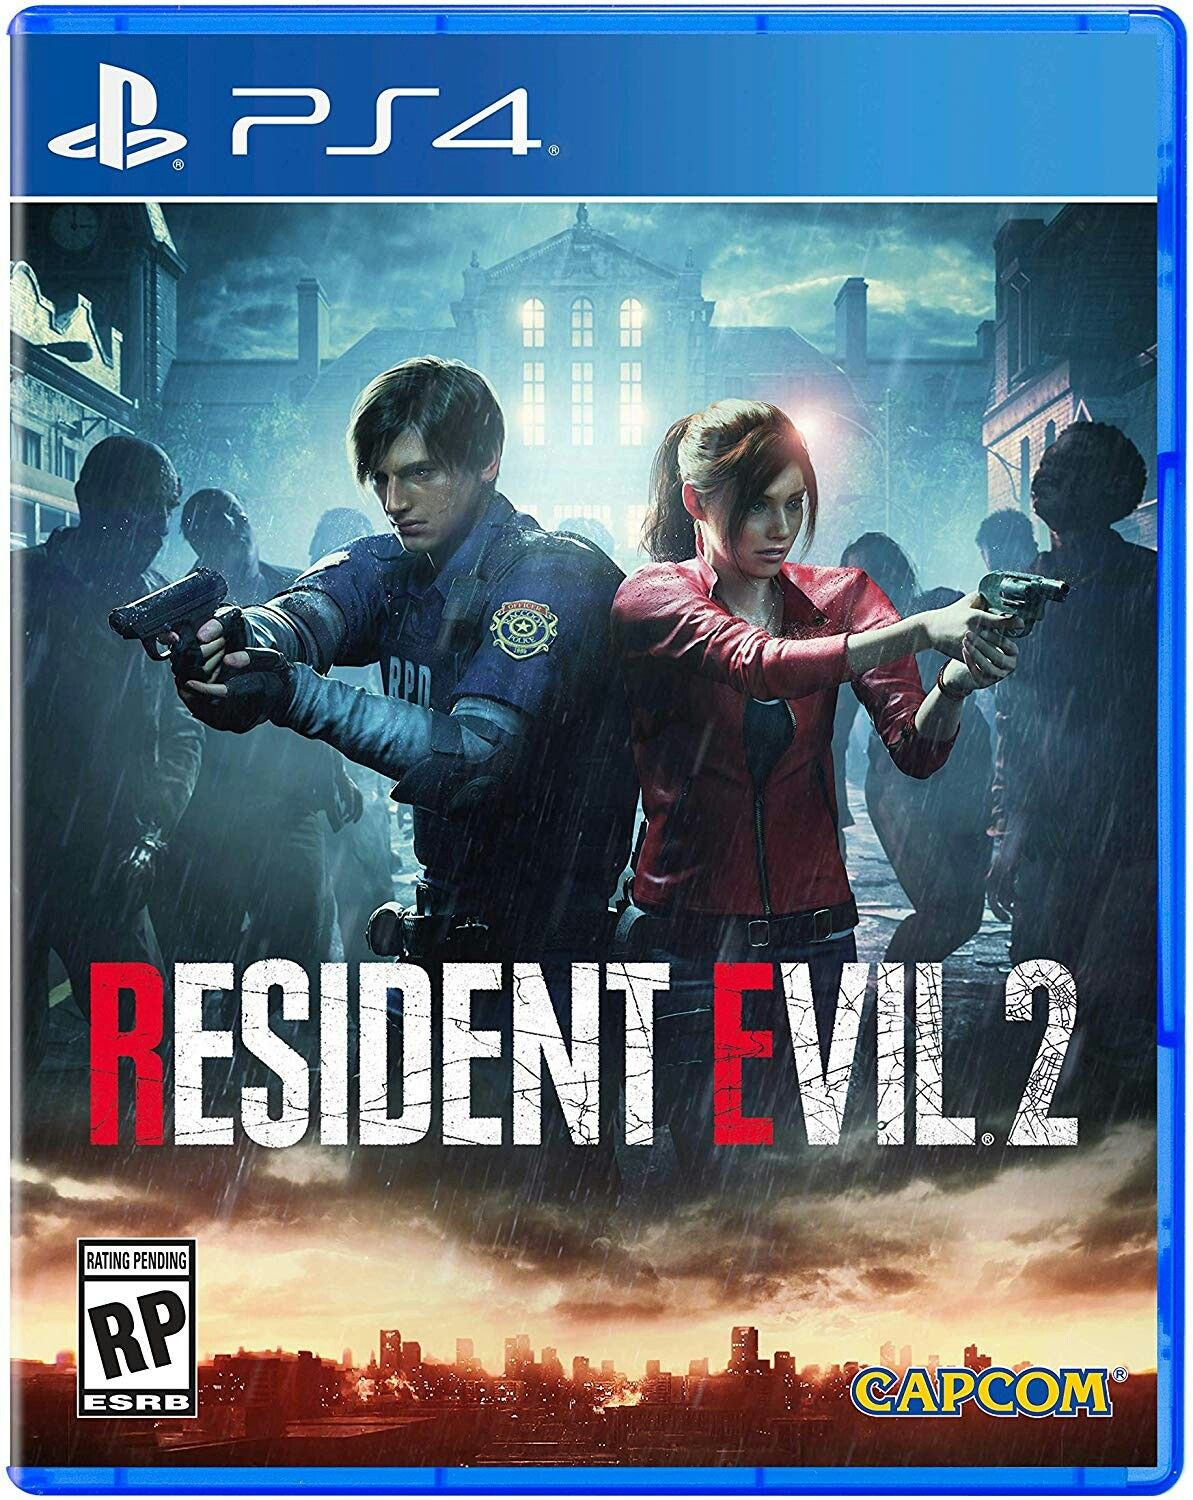 Resident Evil 2 (remake) - Xbox One and PS4 (Website link